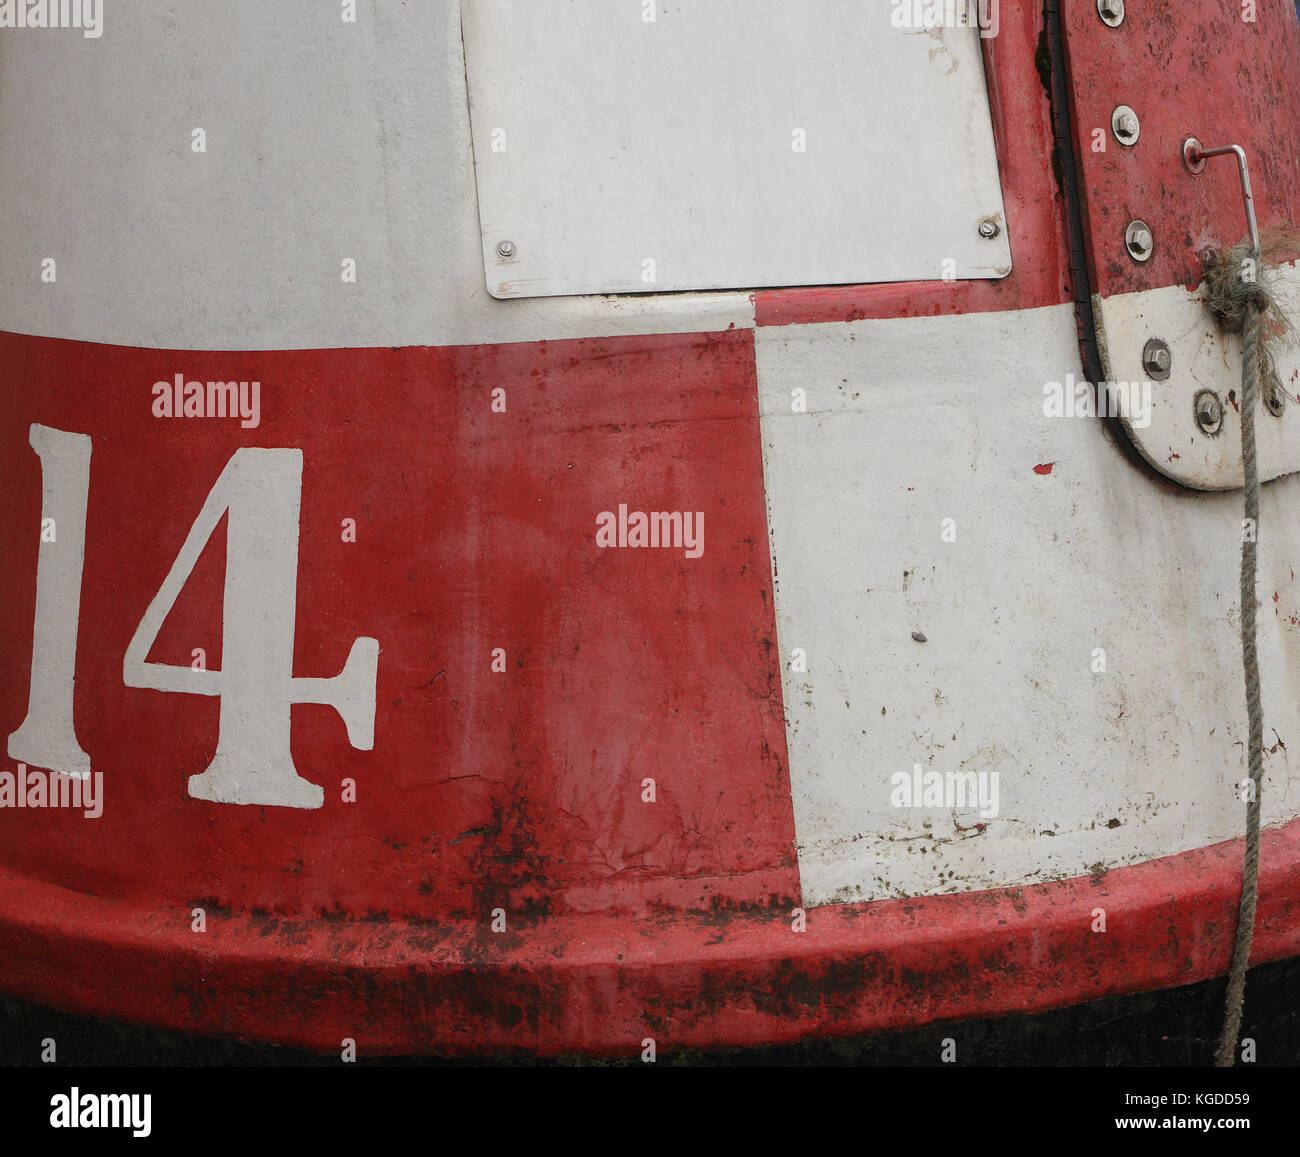 A redundant red and white chequered buoy with the number 14. Topsham, Devon, UK. - Stock Image